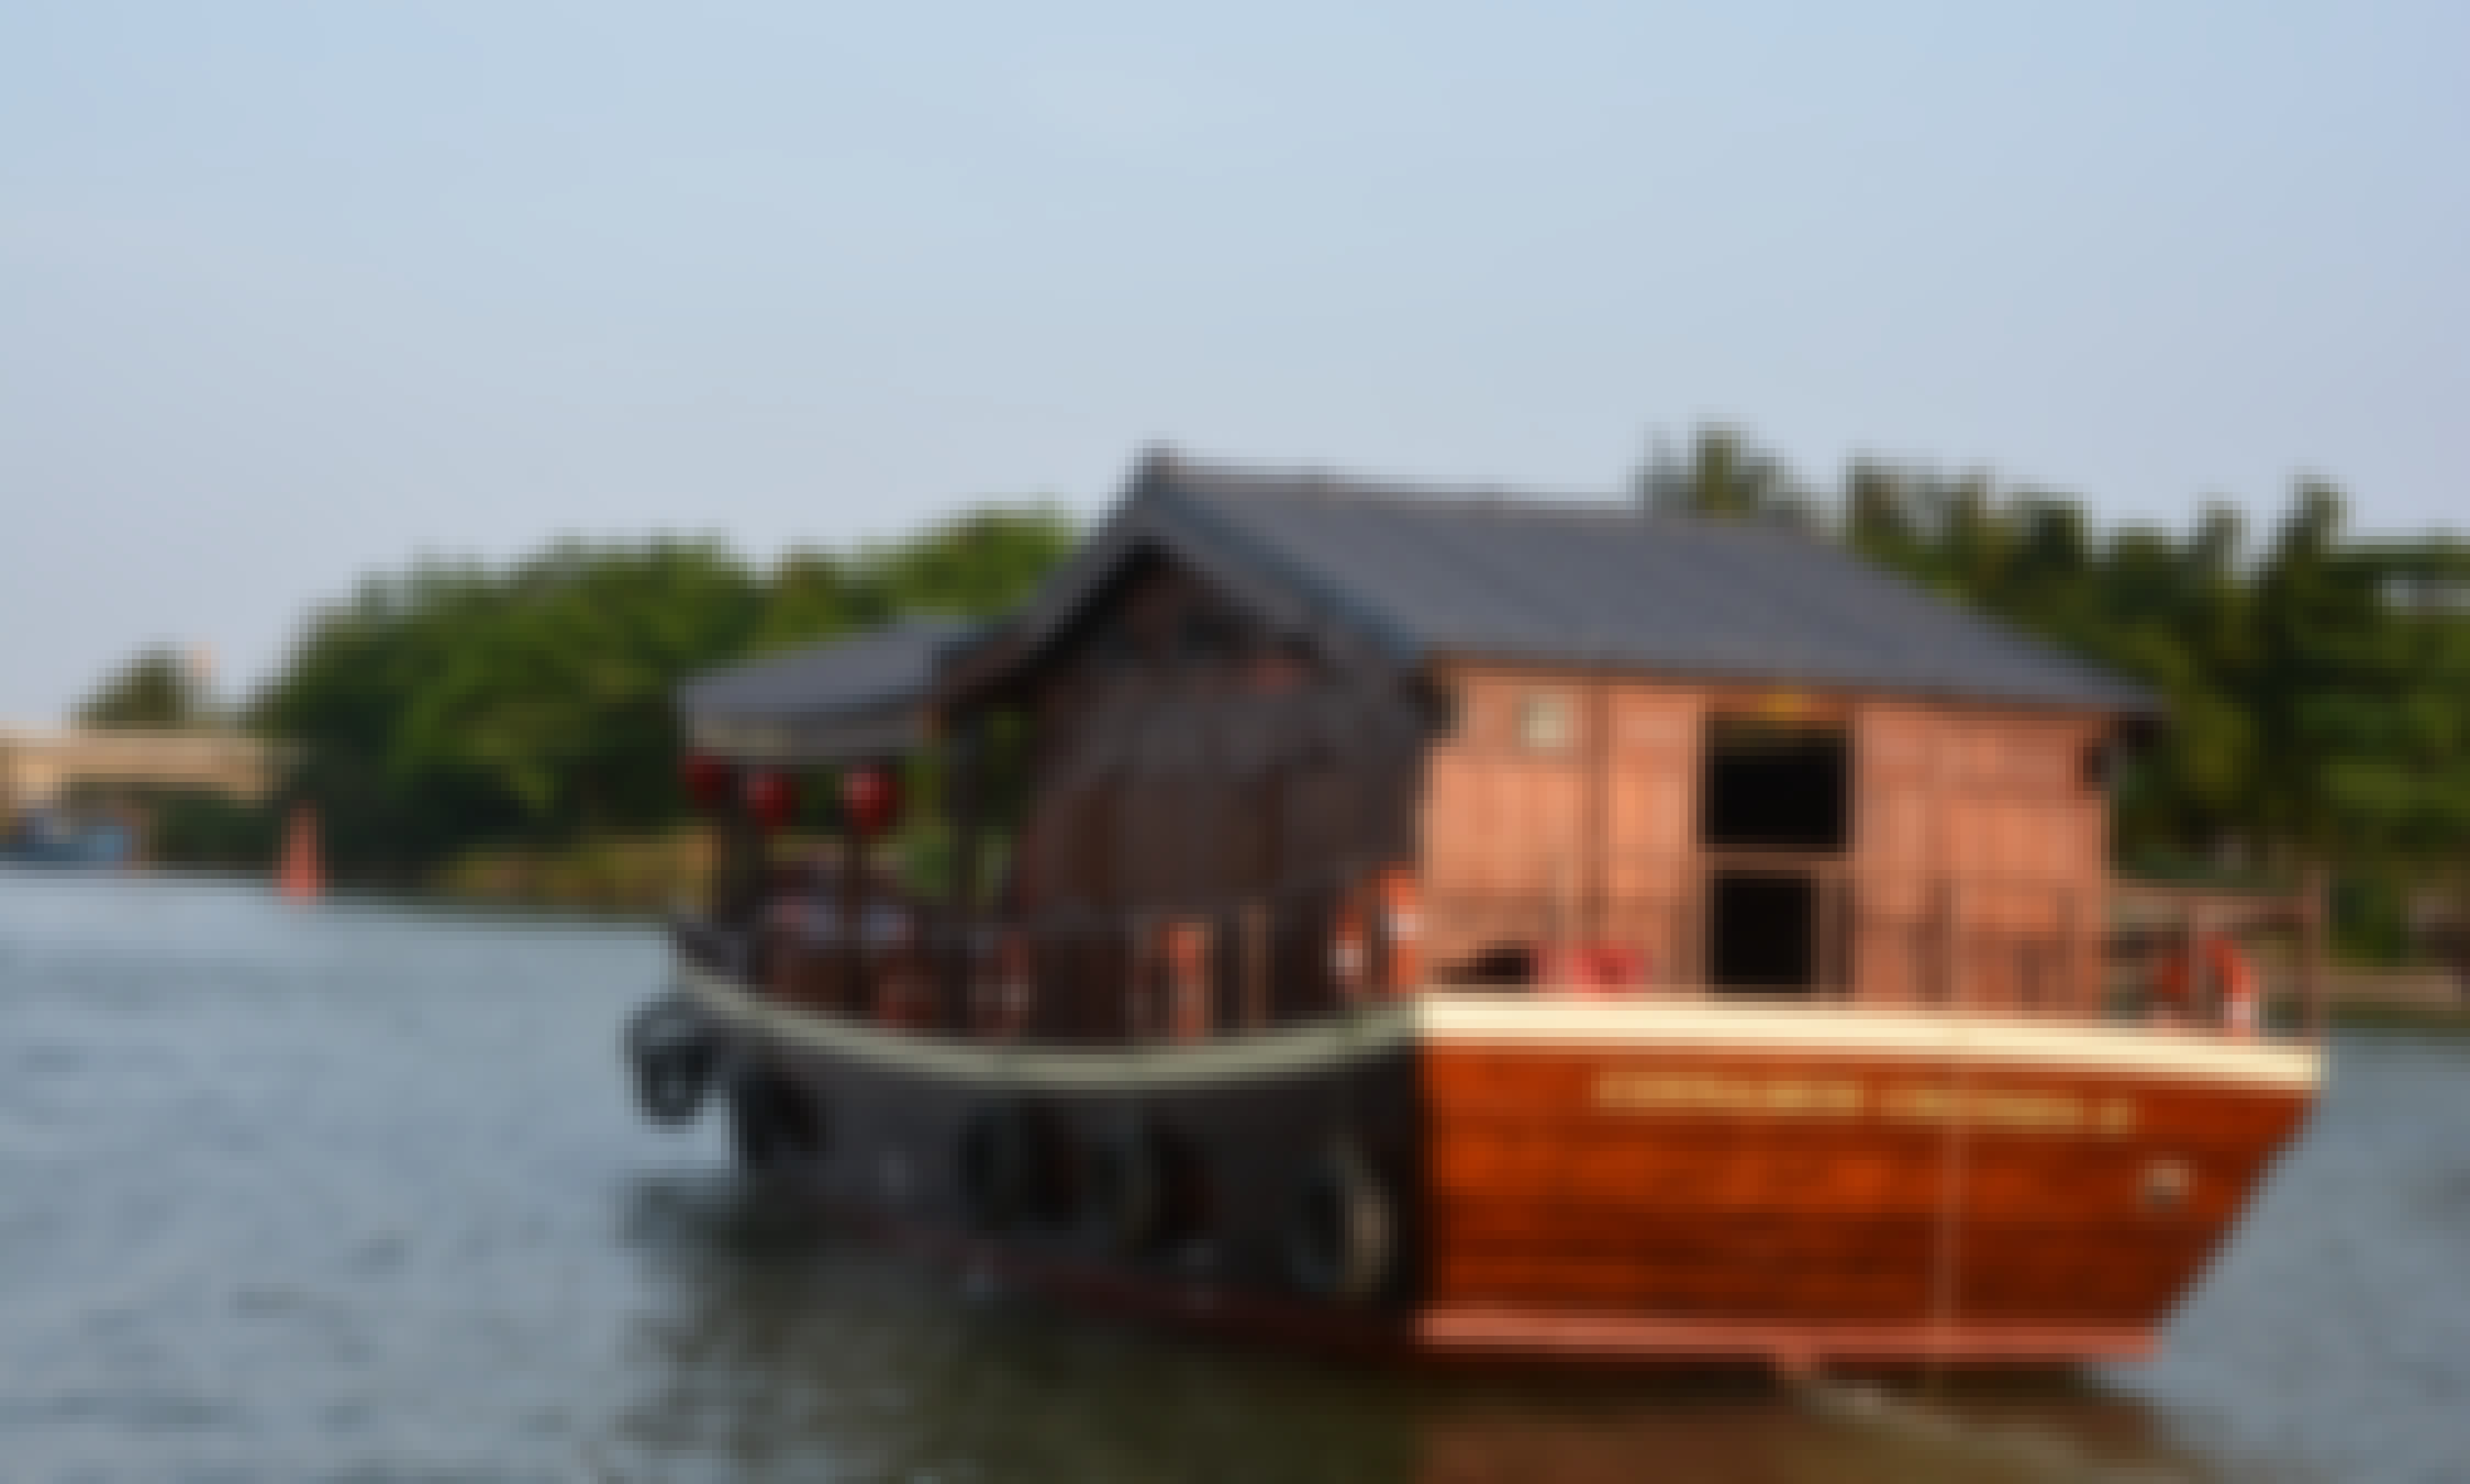 Wooden Boat (24 People Capacity) for Rent in Thành phố Hội An, Vietnam